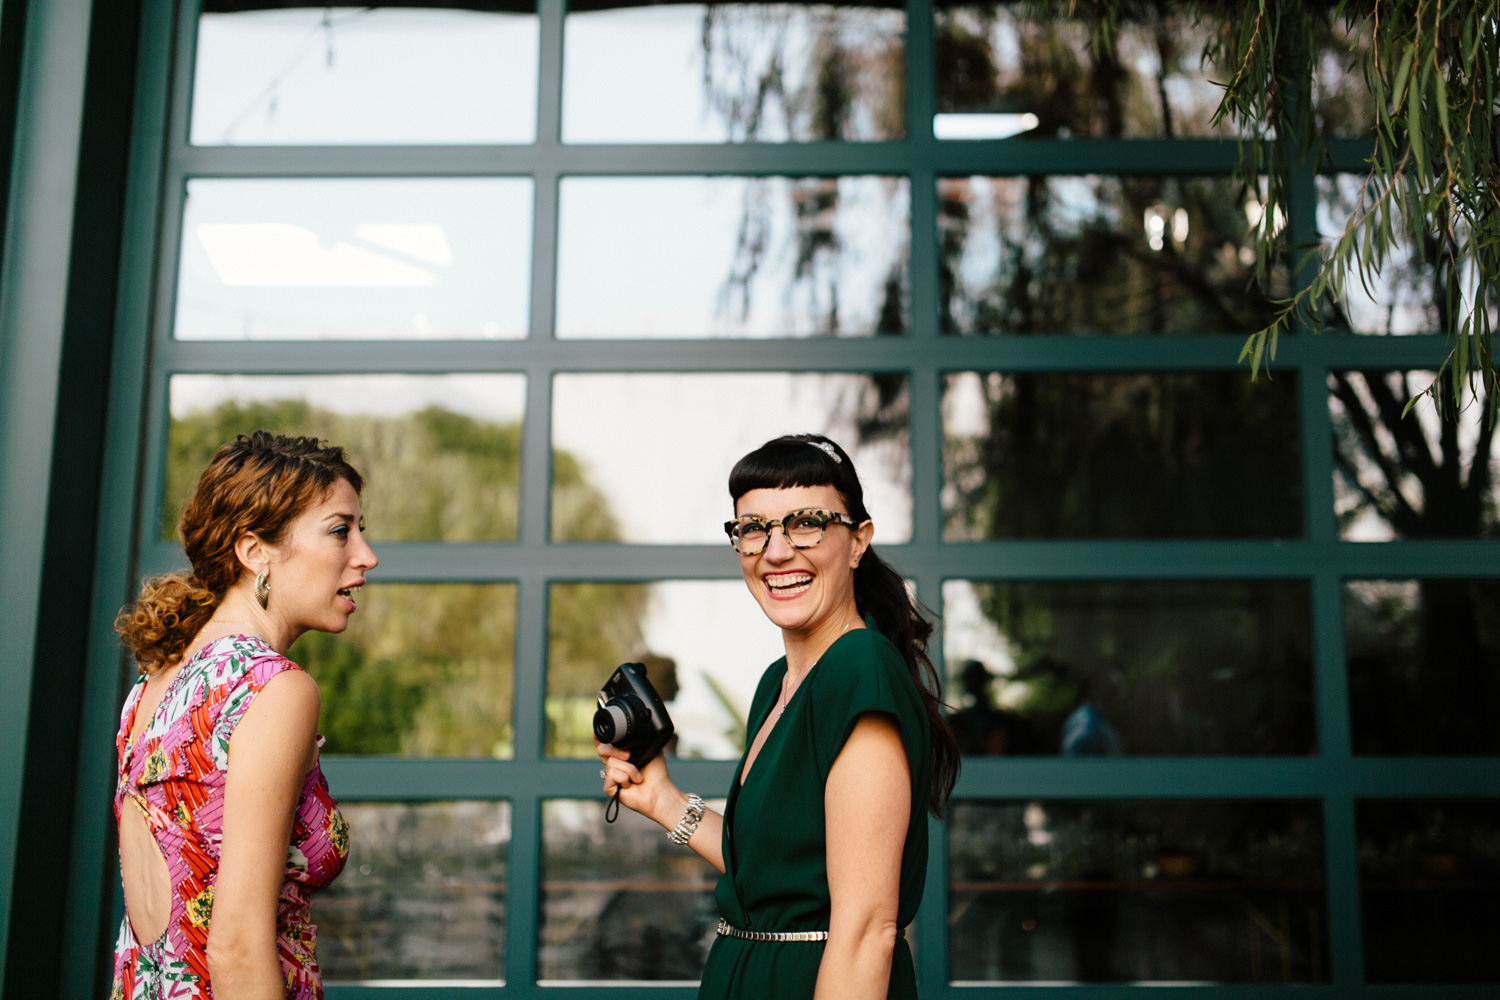 Los Angeles Wedding Photographer, Ace Hotel, Millwick Wedding - The Gathering Season x weareleoandkat 052.JPG